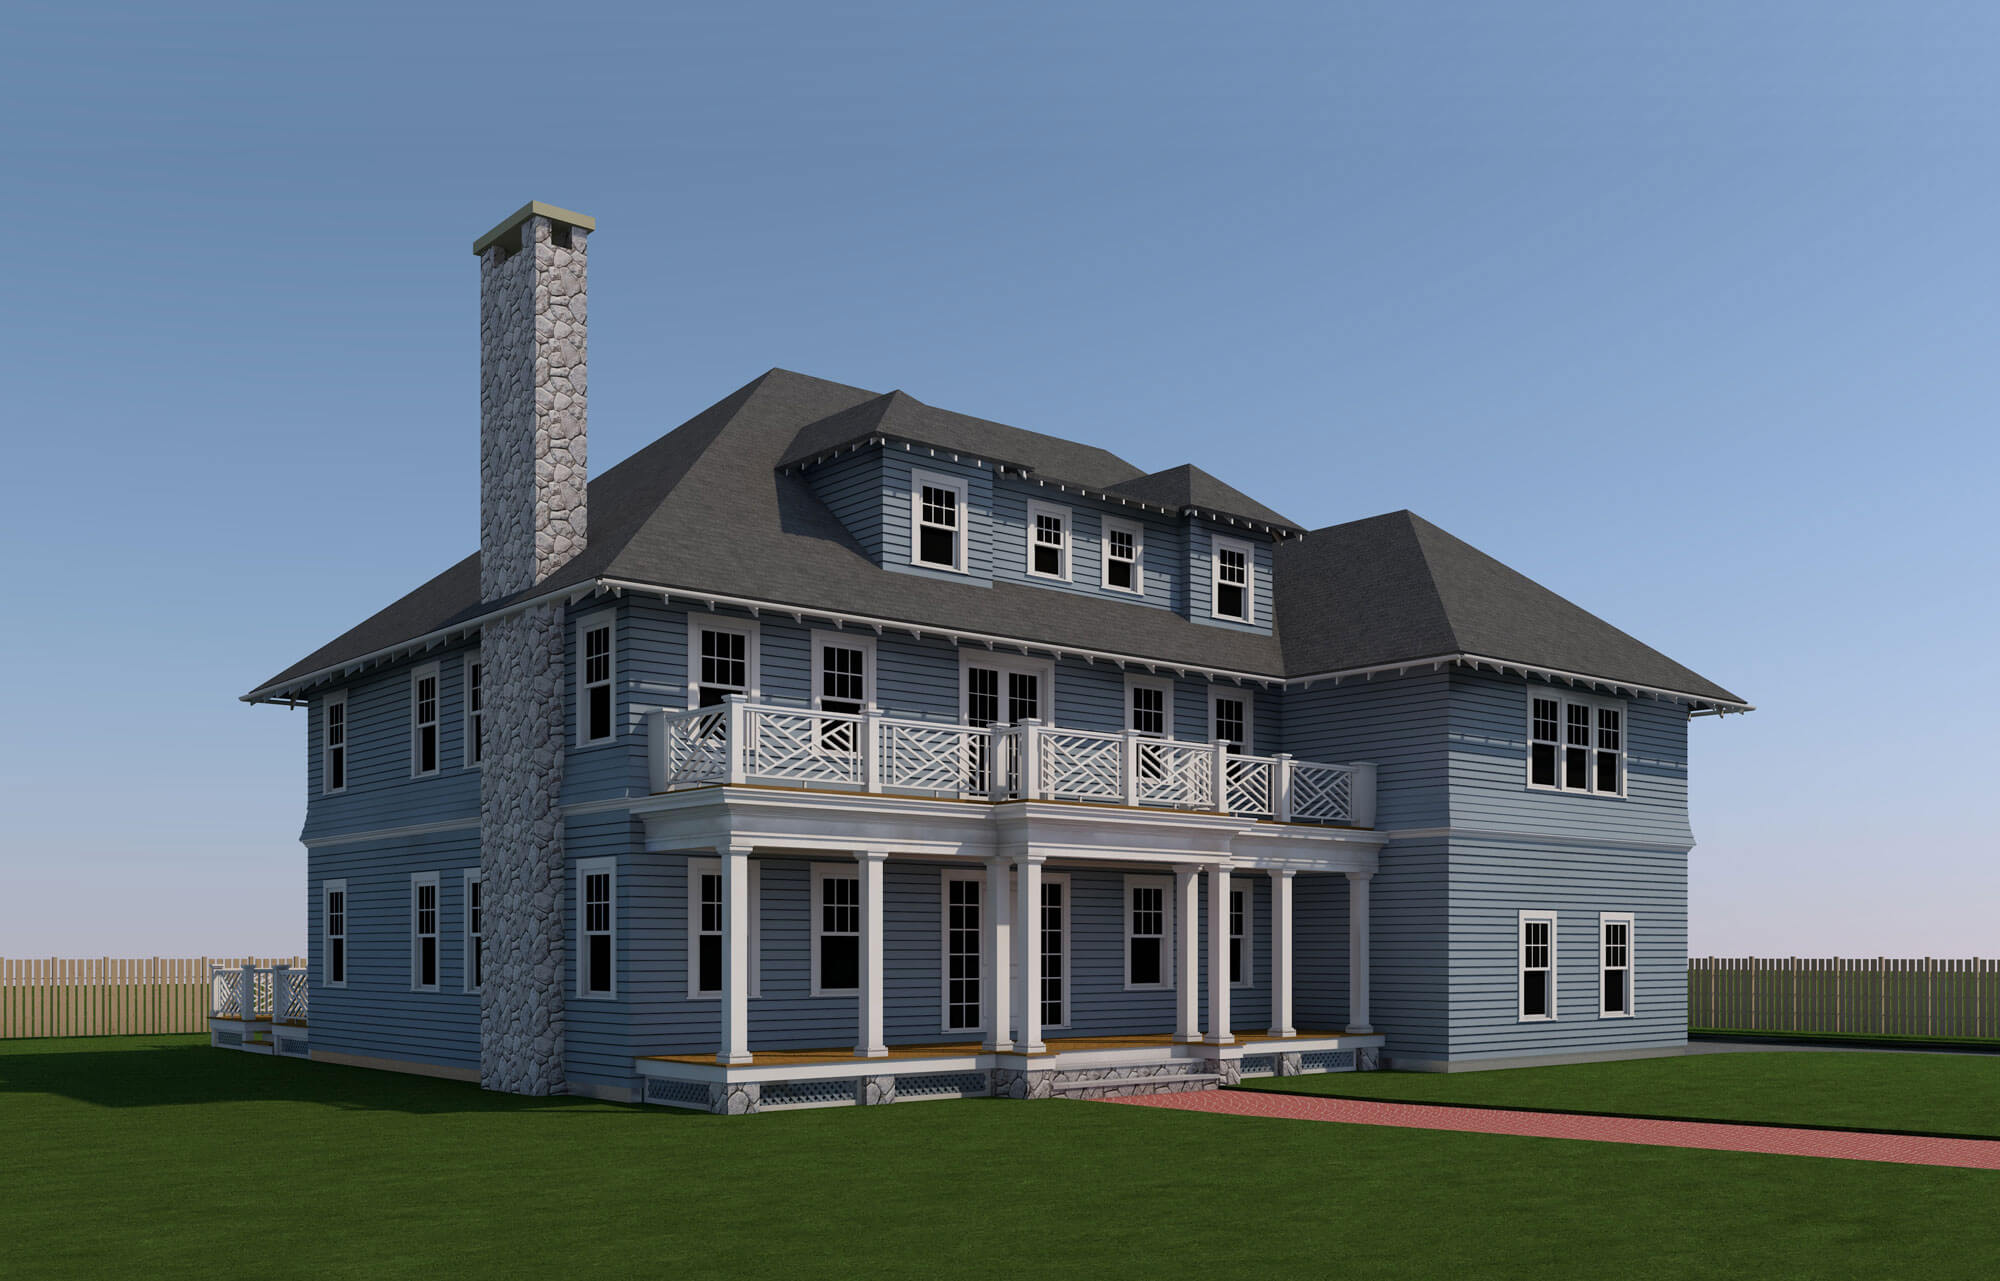 NEW CRAFTSMAN STYLE COLONIAL REVIVAL HOUSE